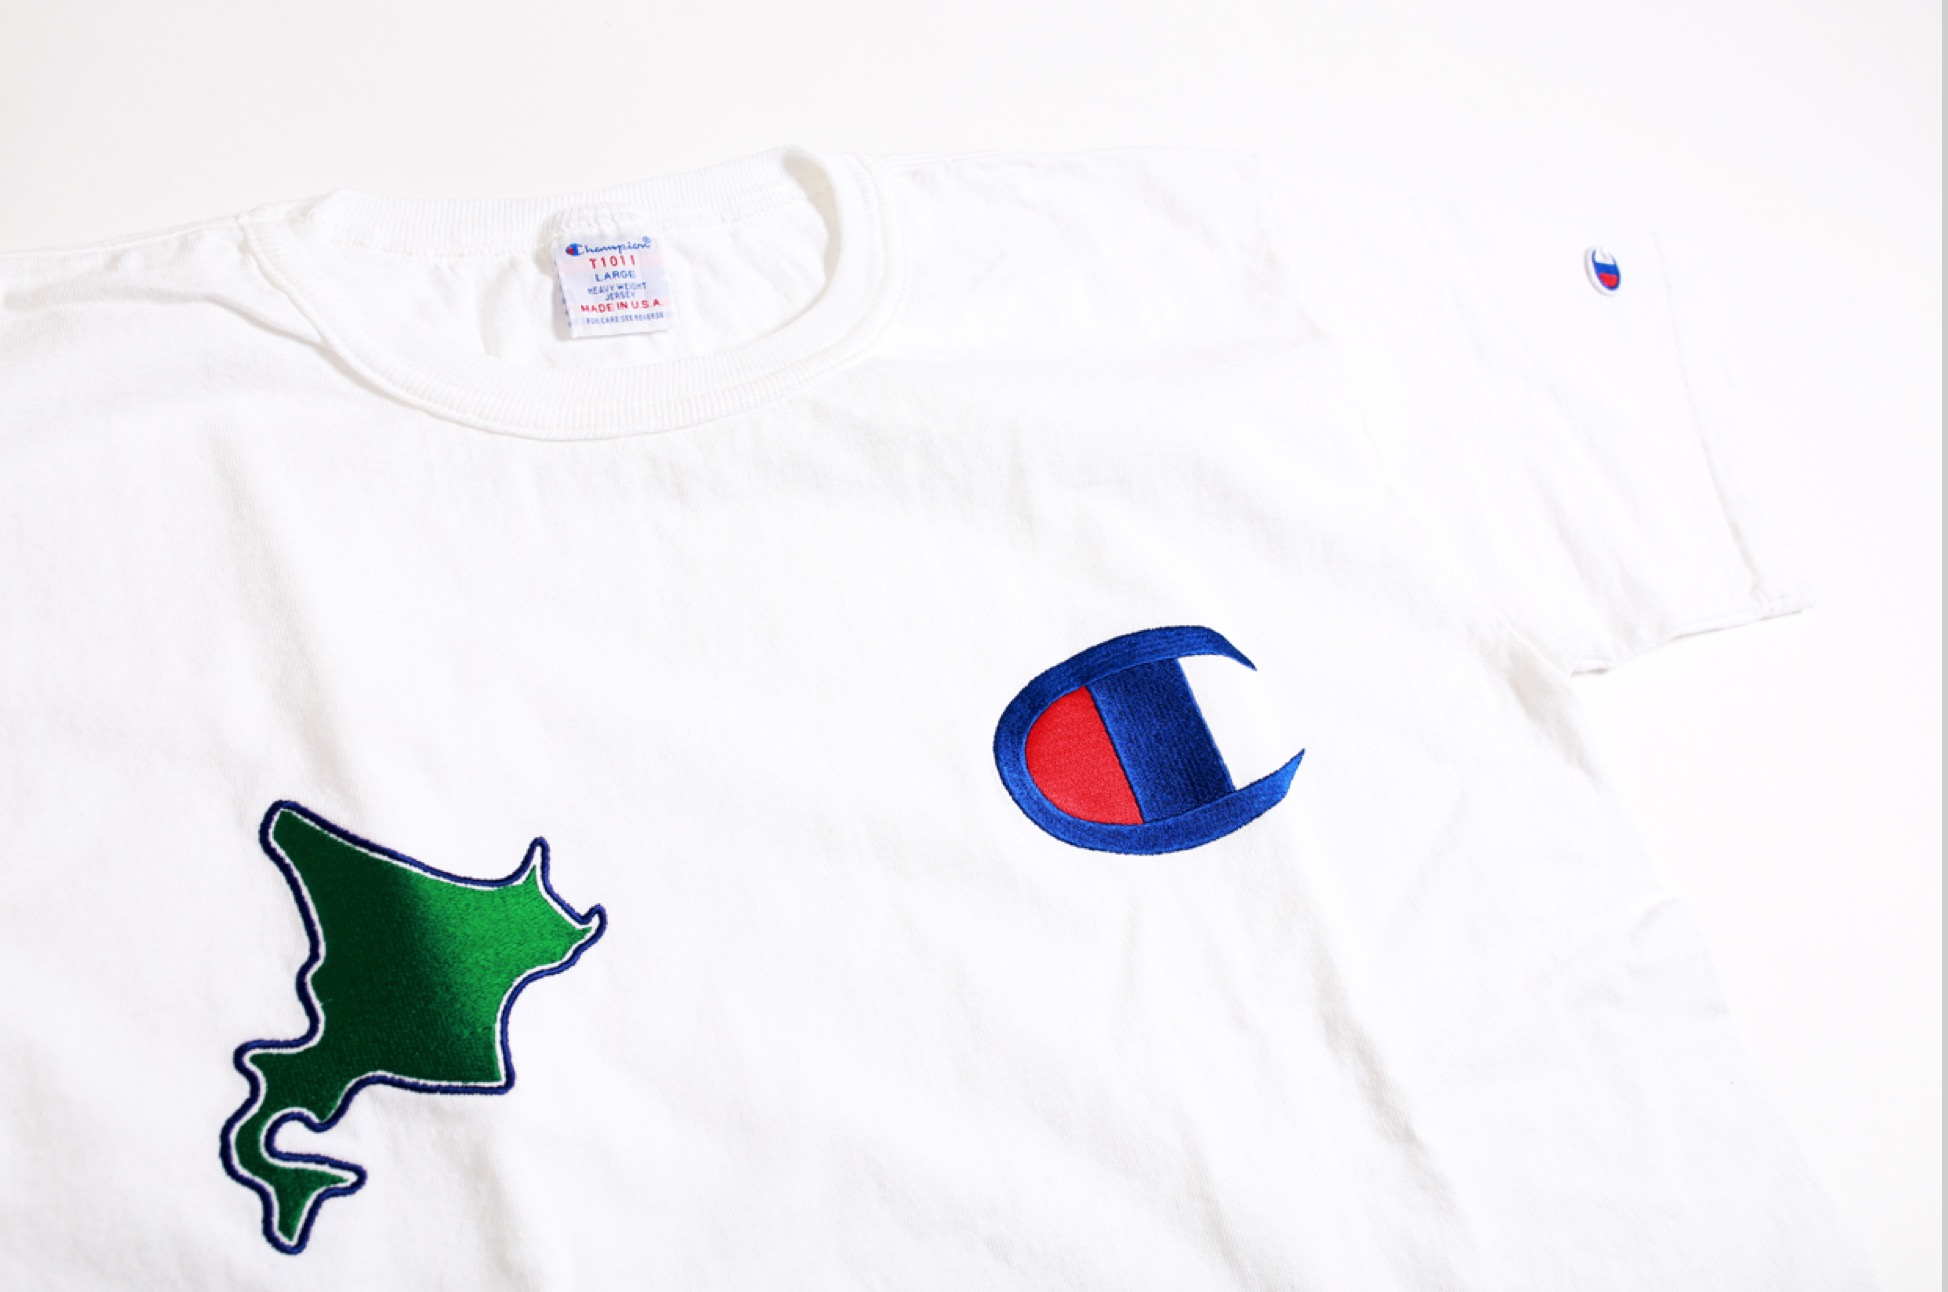 Champion 札幌ステラプレイス オープン記念限定商品Made in USA「T1011」Tシャツイメージ